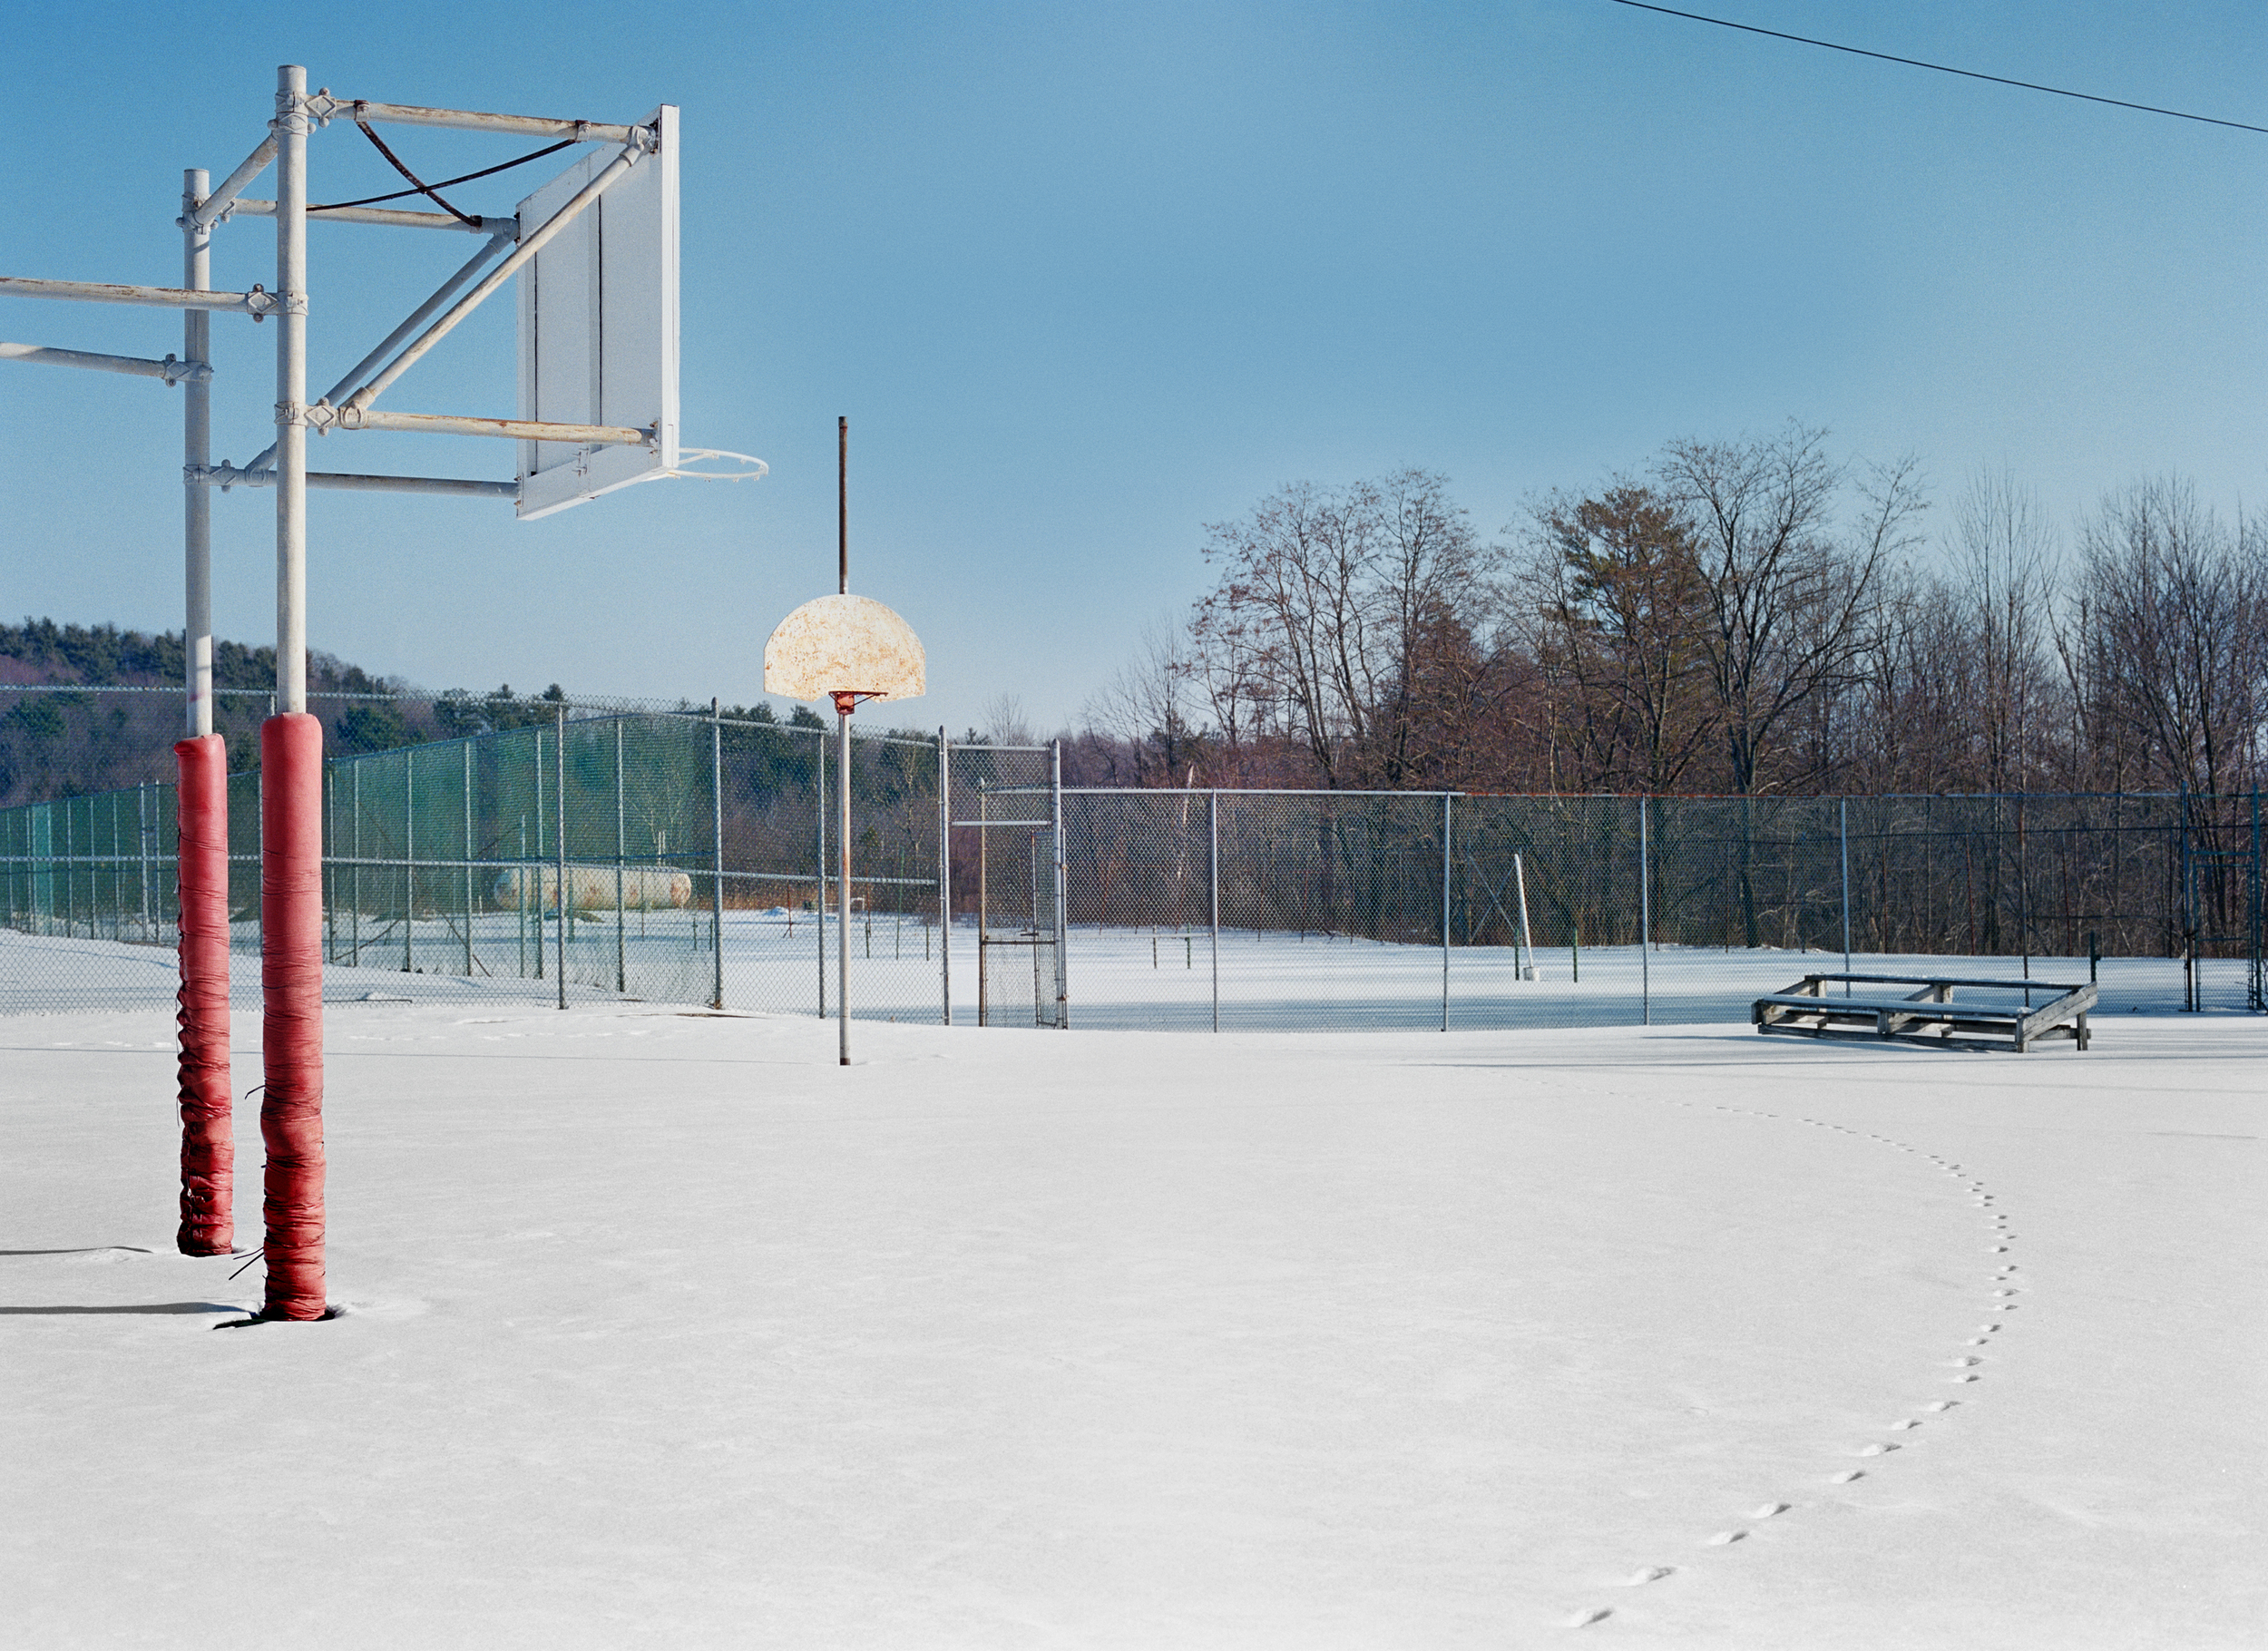 Basketball Court, Kutsher's Country Club and Hotel, Monticello, NY, Bungalow Colony, Monticello, NY, Chromogenic Print